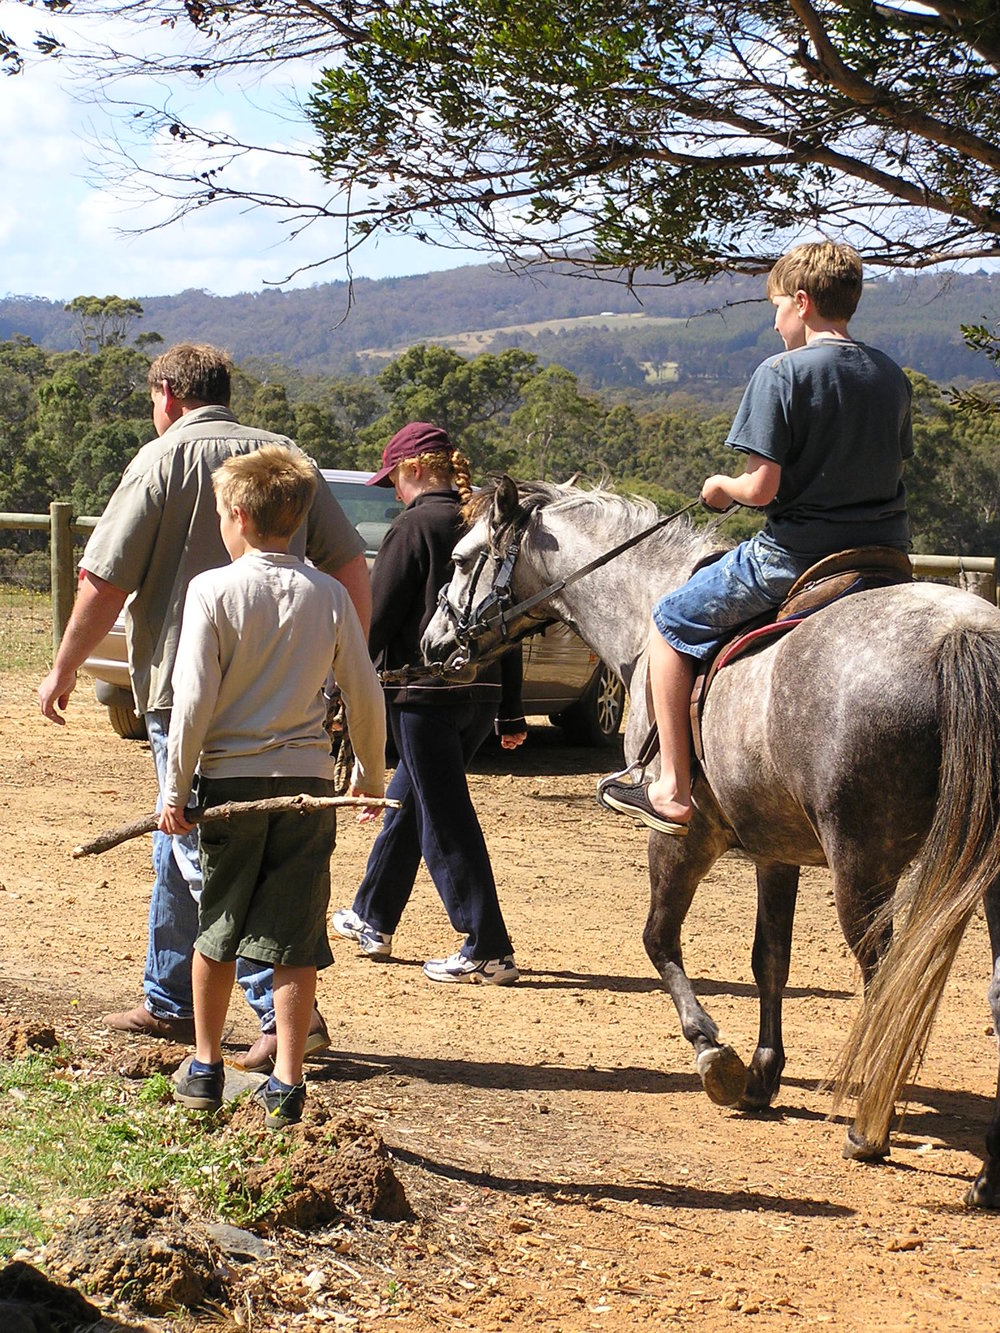 Warren leading a pony ride with three children